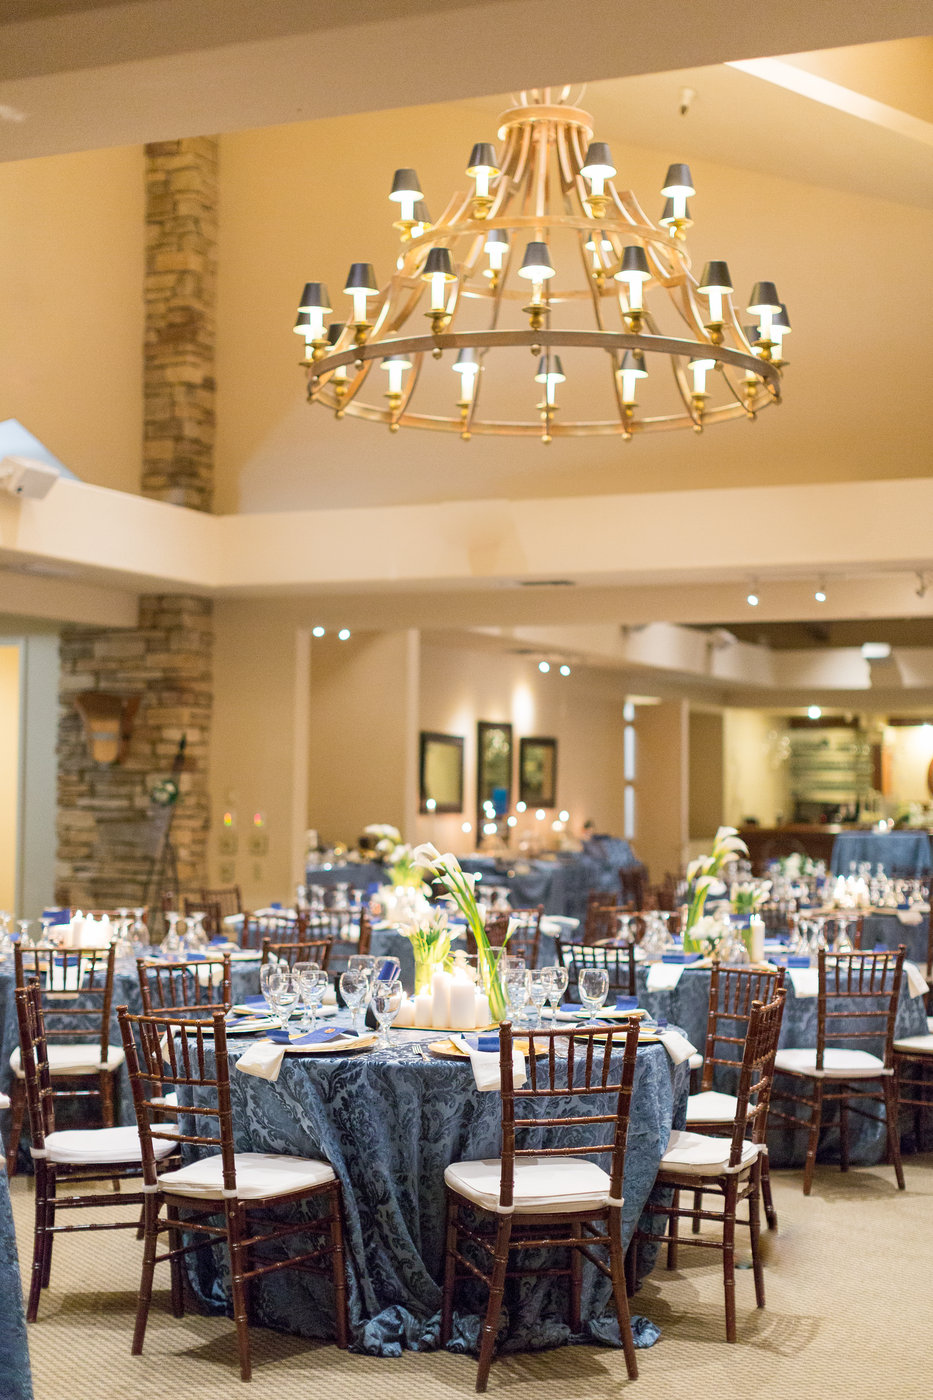 indoor-wedding-winter-reception-in-chico-californiajpg